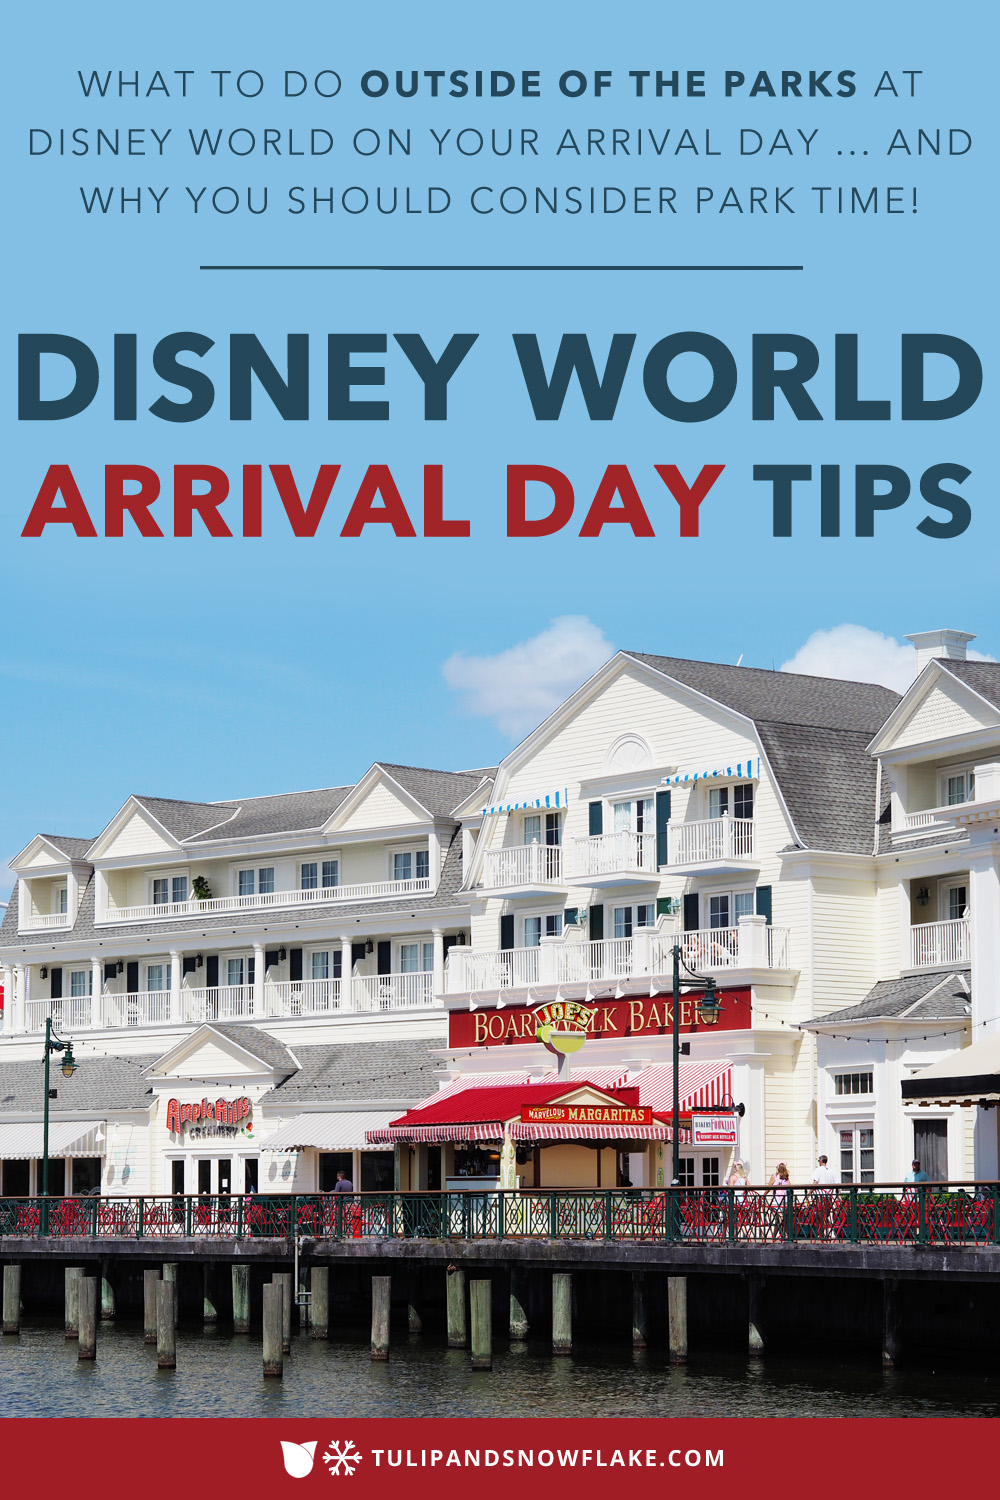 Disney World arrival day tips